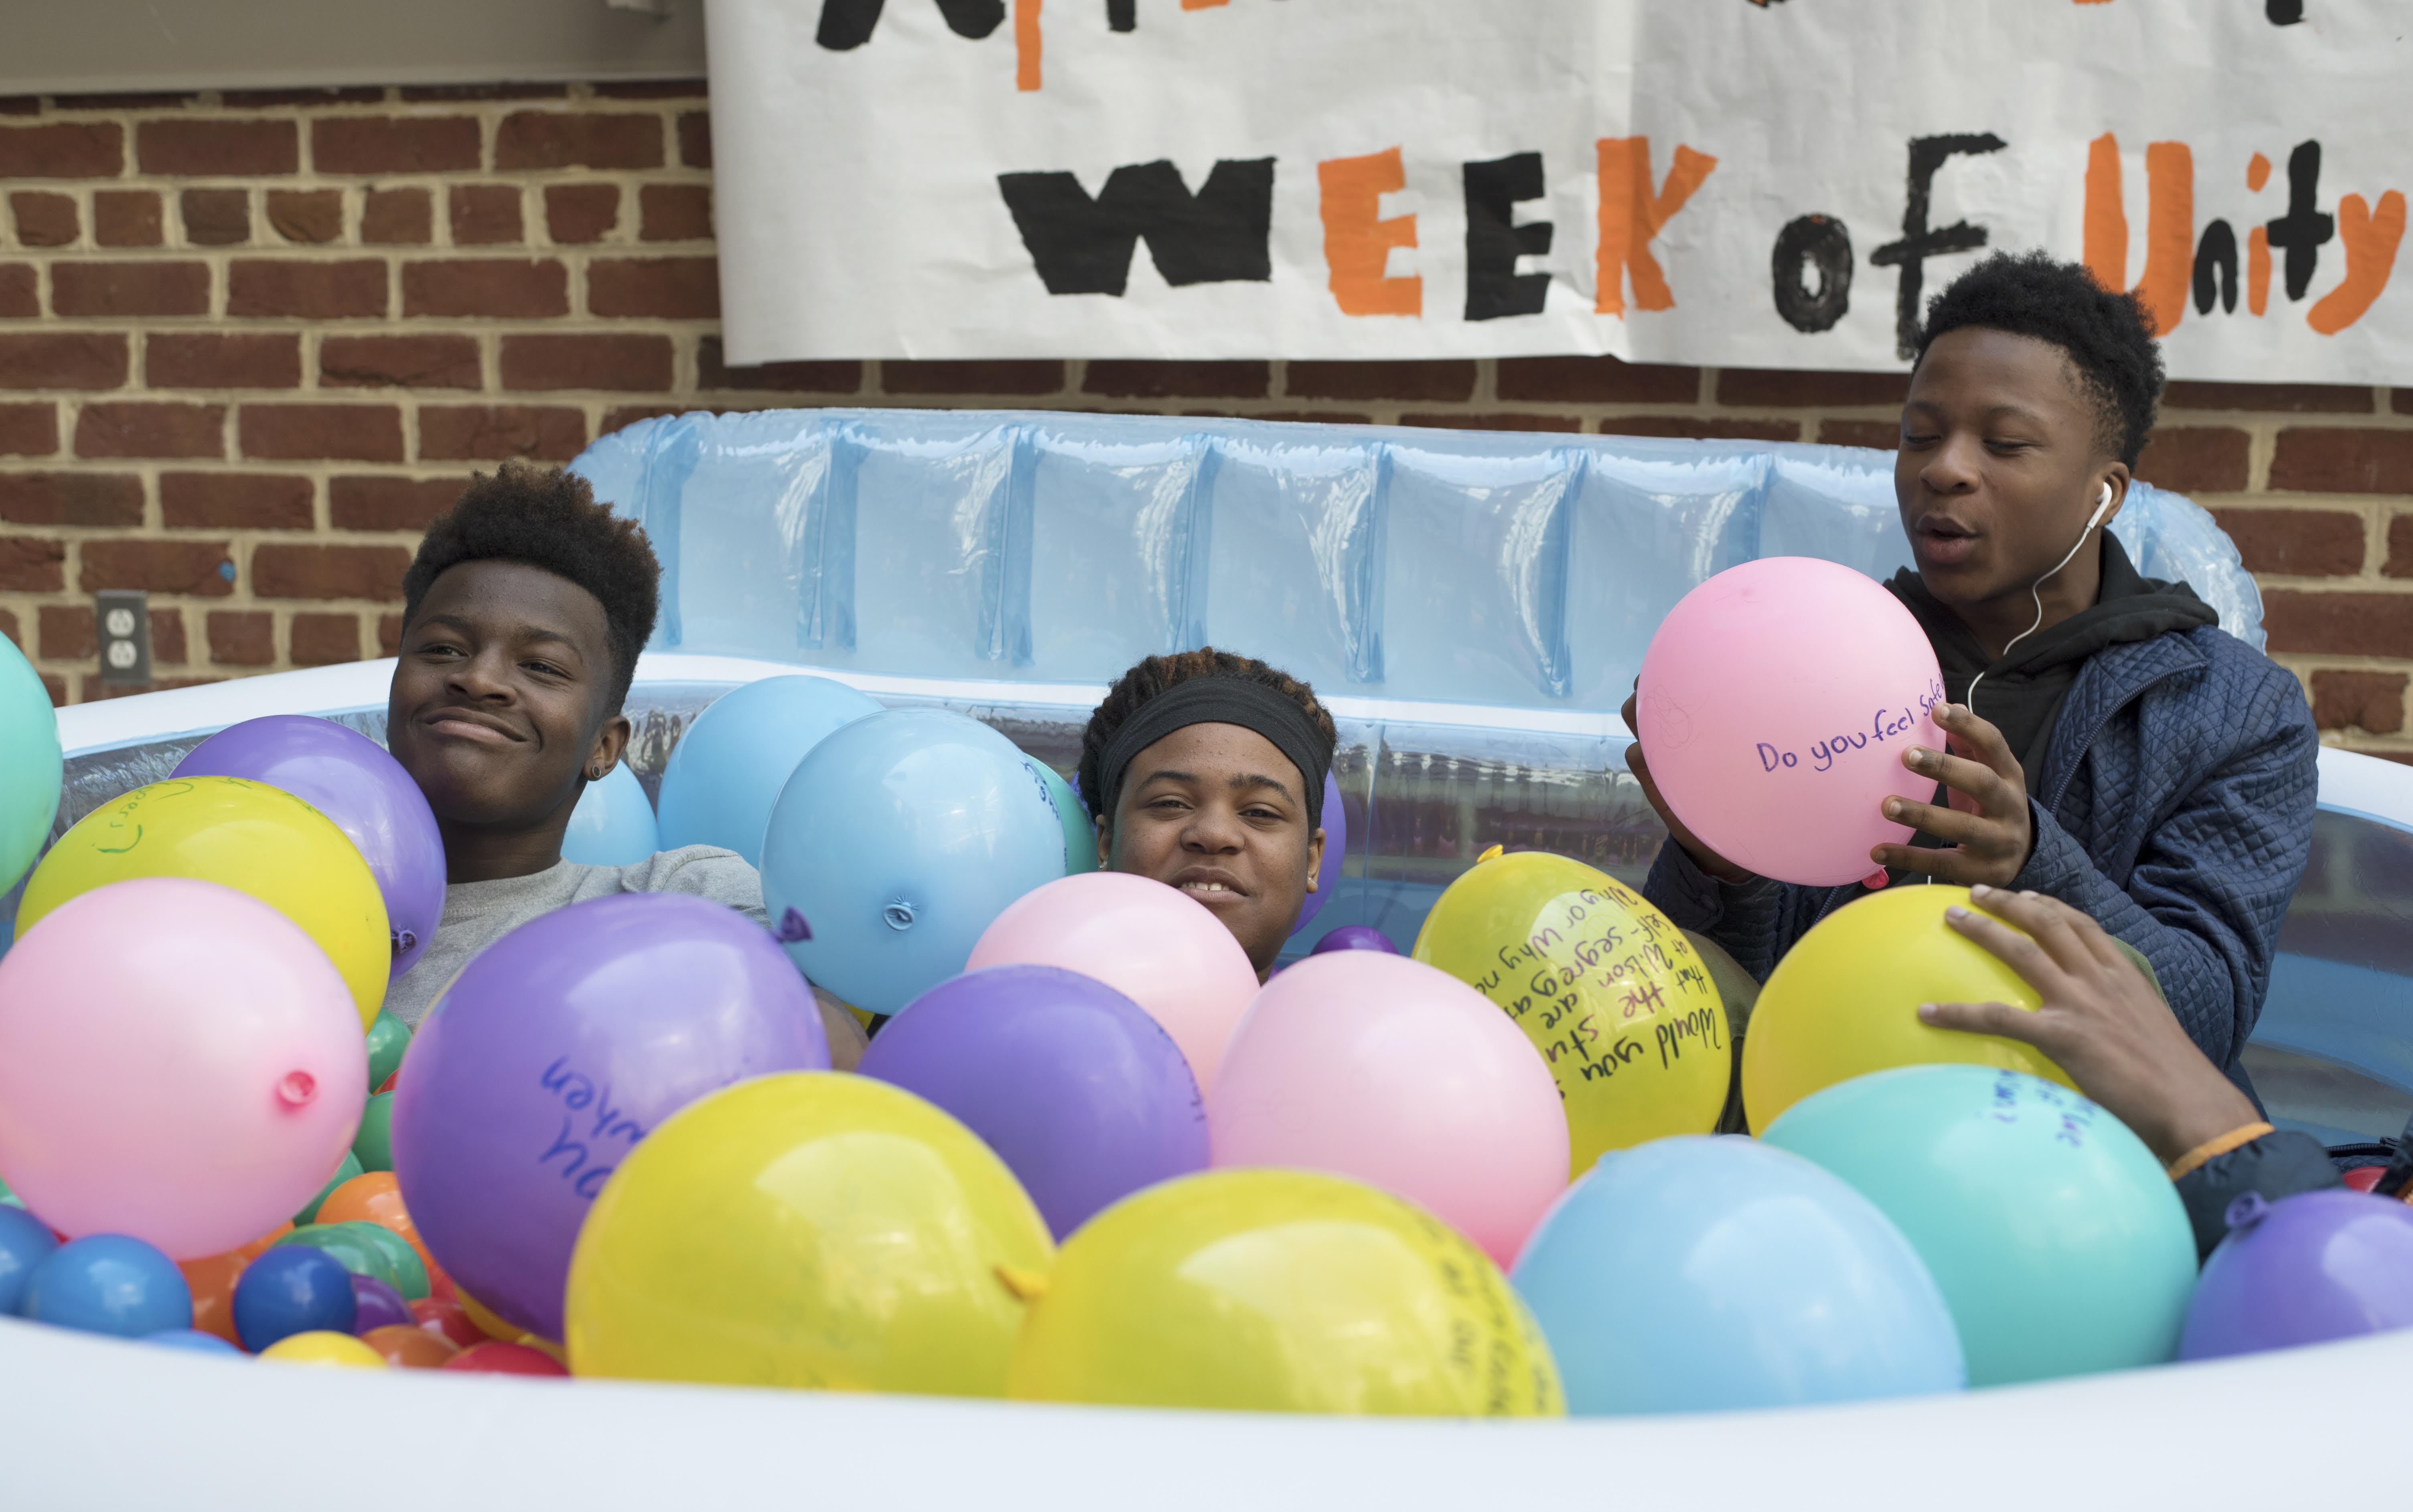 The Tiger Alliance challenges unlikely allies to come together in unity and ball pits